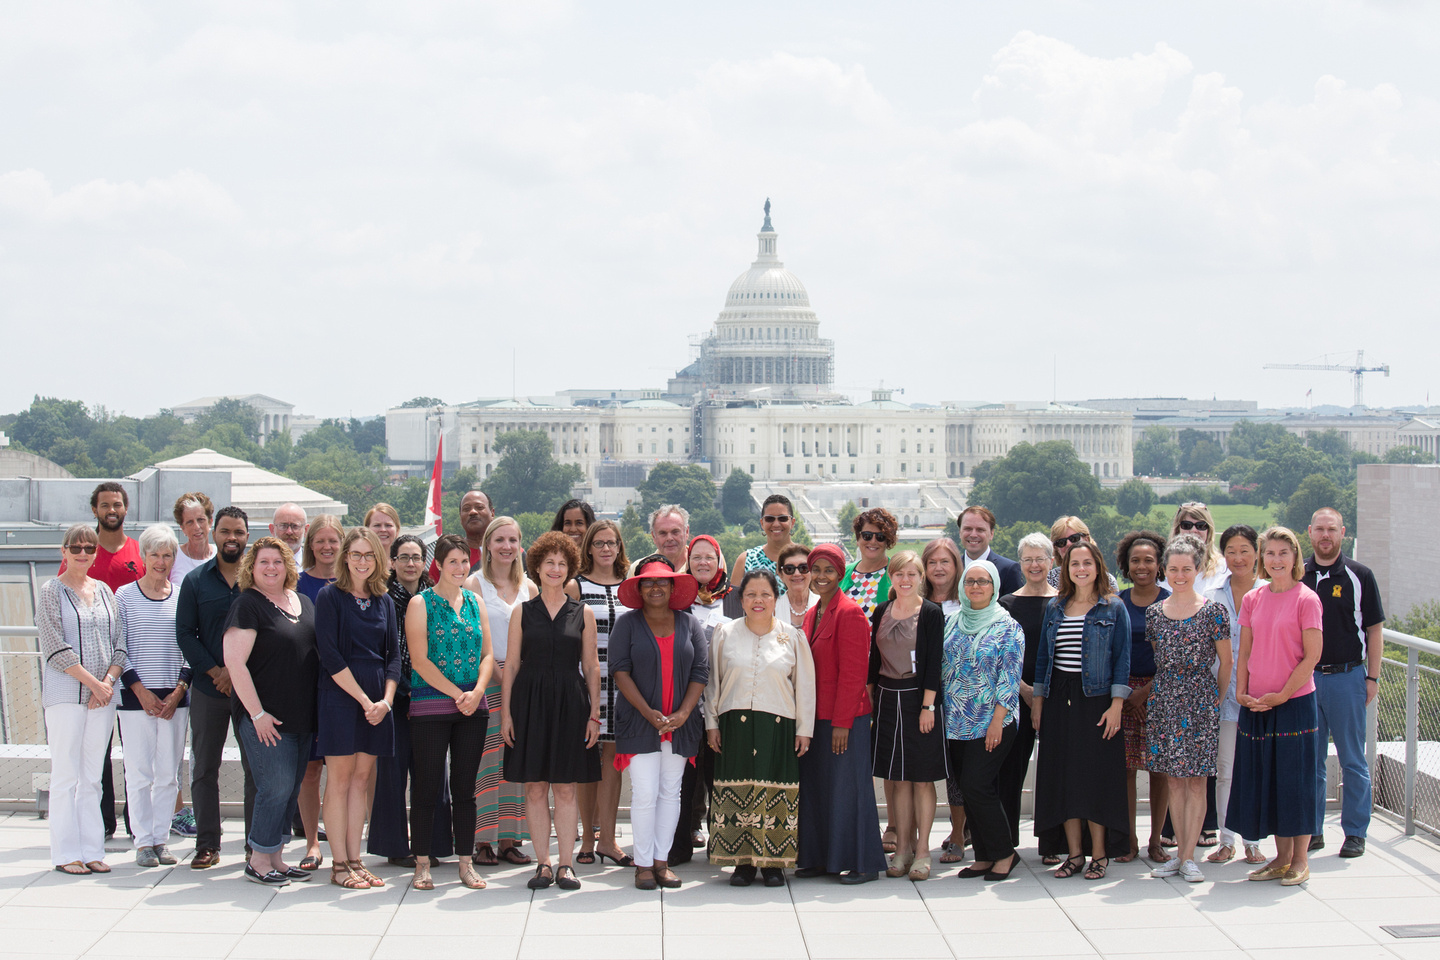 Group photo in front of Capitol